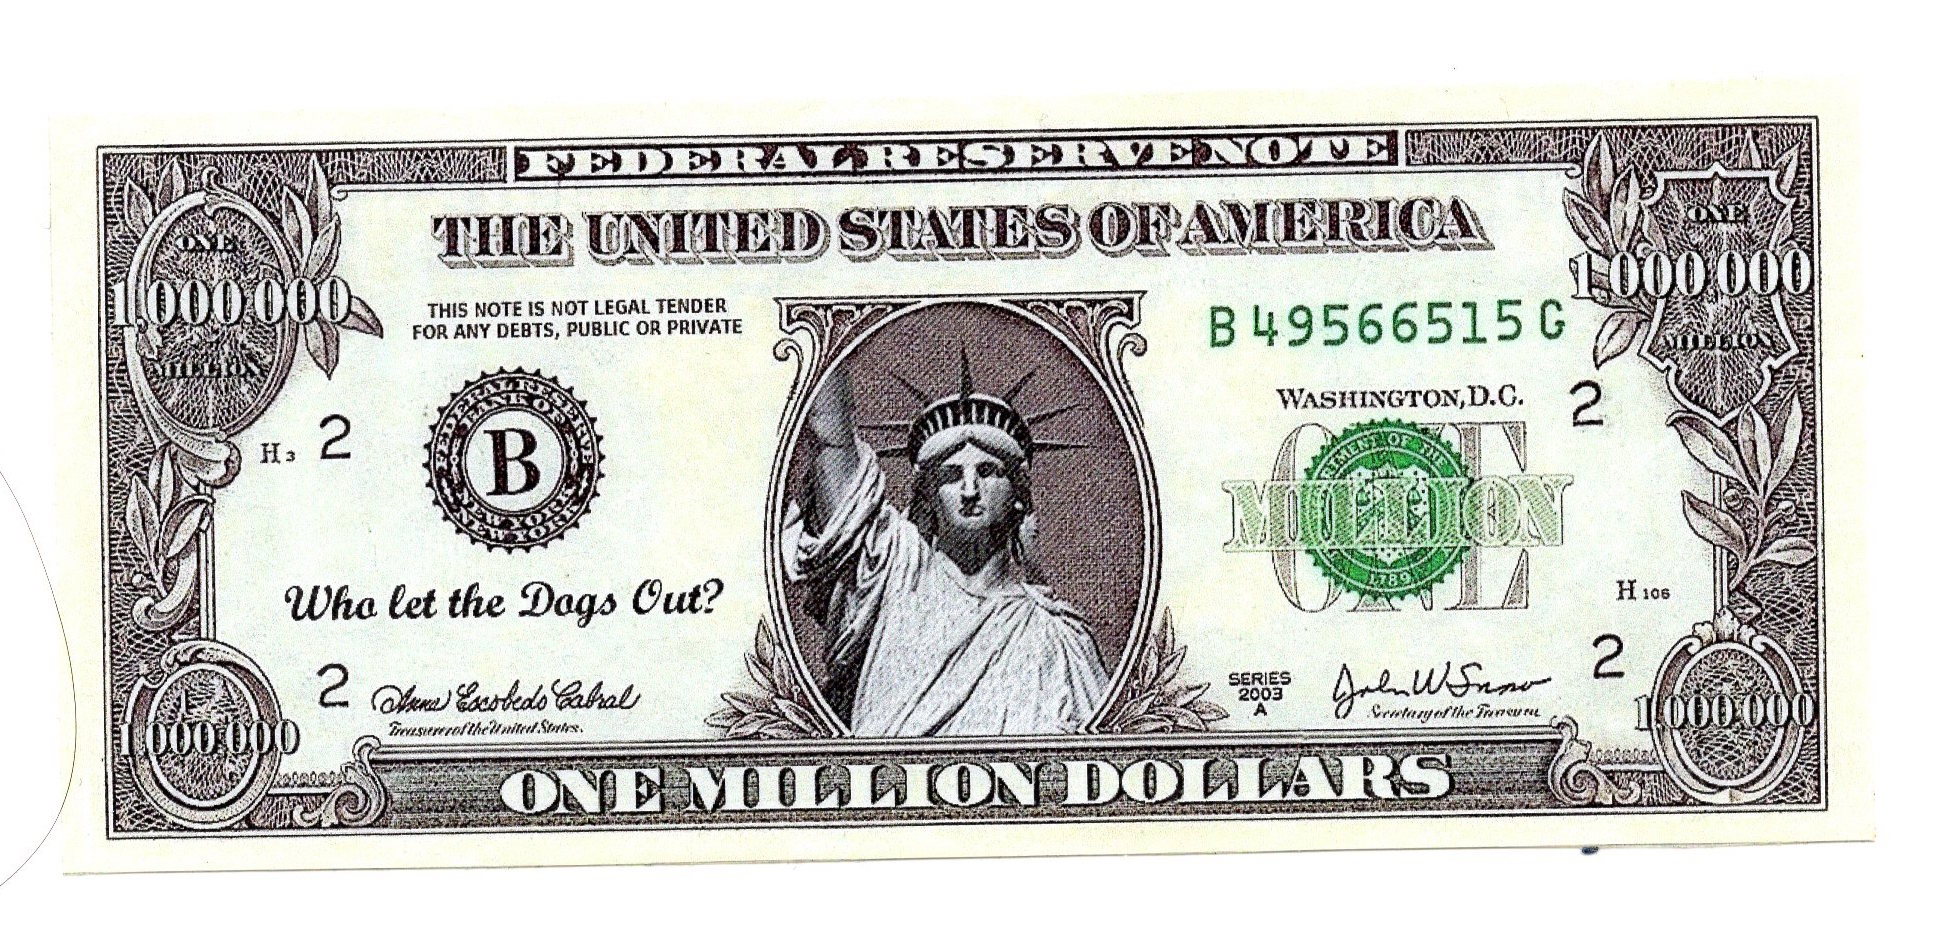 WLWLTDOO-XXXX-EPHEMERA-NOVELTY_MONEY-FRONT.jpg